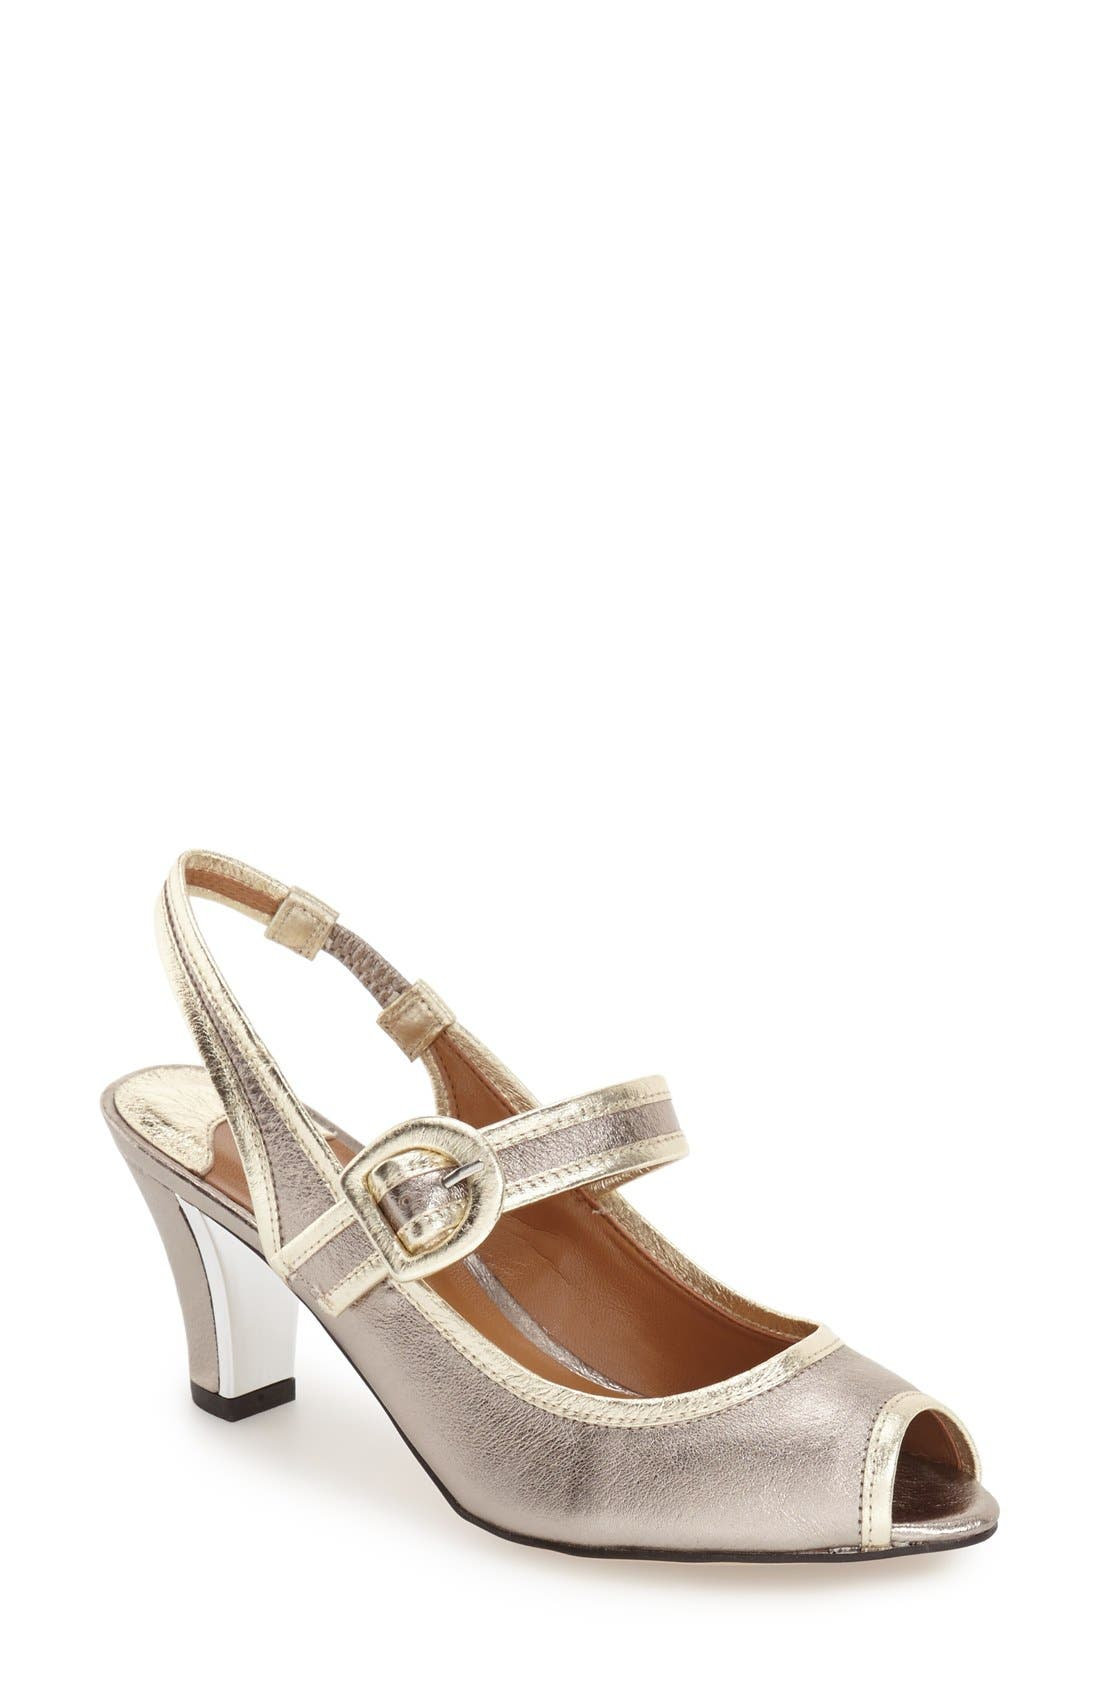 J. RENEÉ 'Nevern' Slingback Peep Toe Pump